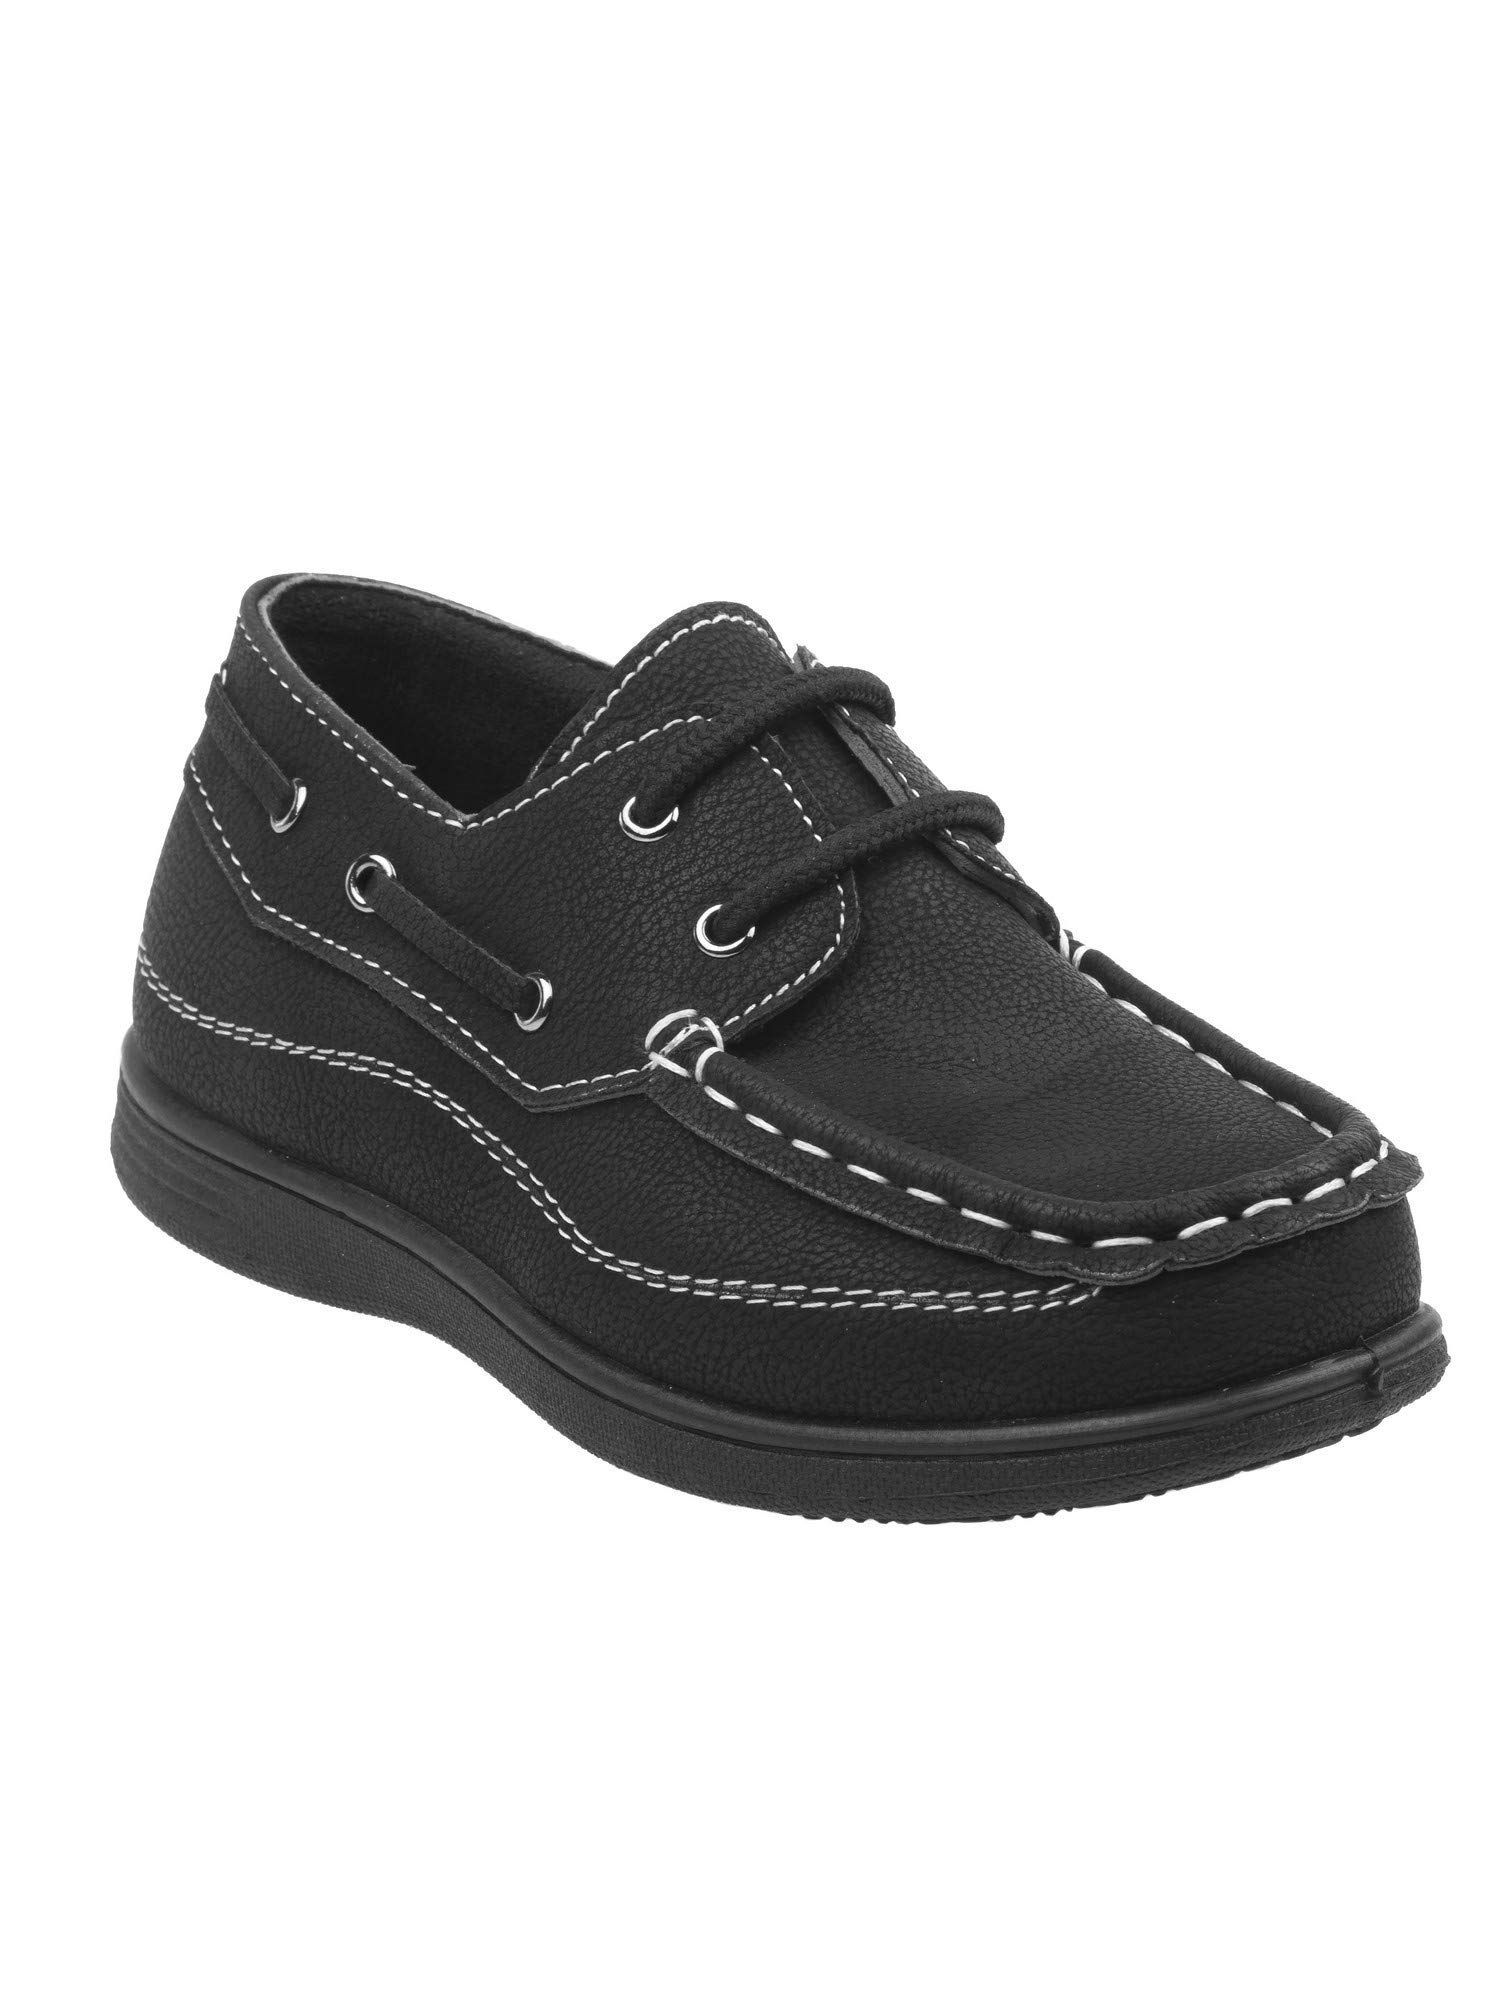 Josmo Boys Black Stitching Detail Lace Closure Trendy Boat Shoes 3 Kids